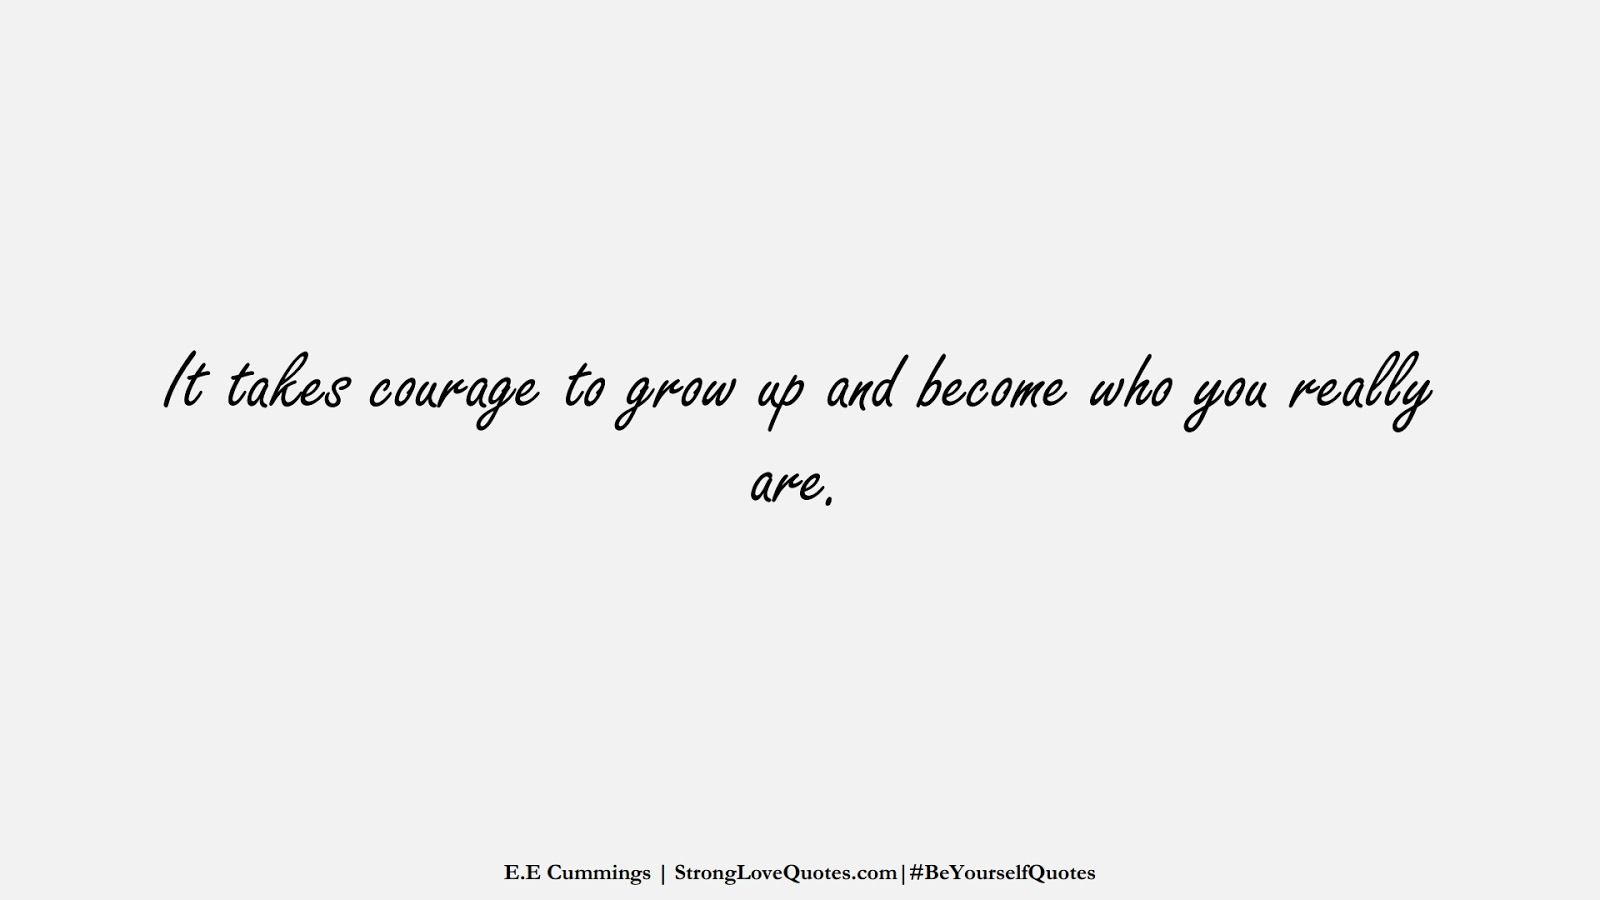 It takes courage to grow up and become who you really are. (E.E Cummings);  #BeYourselfQuotes